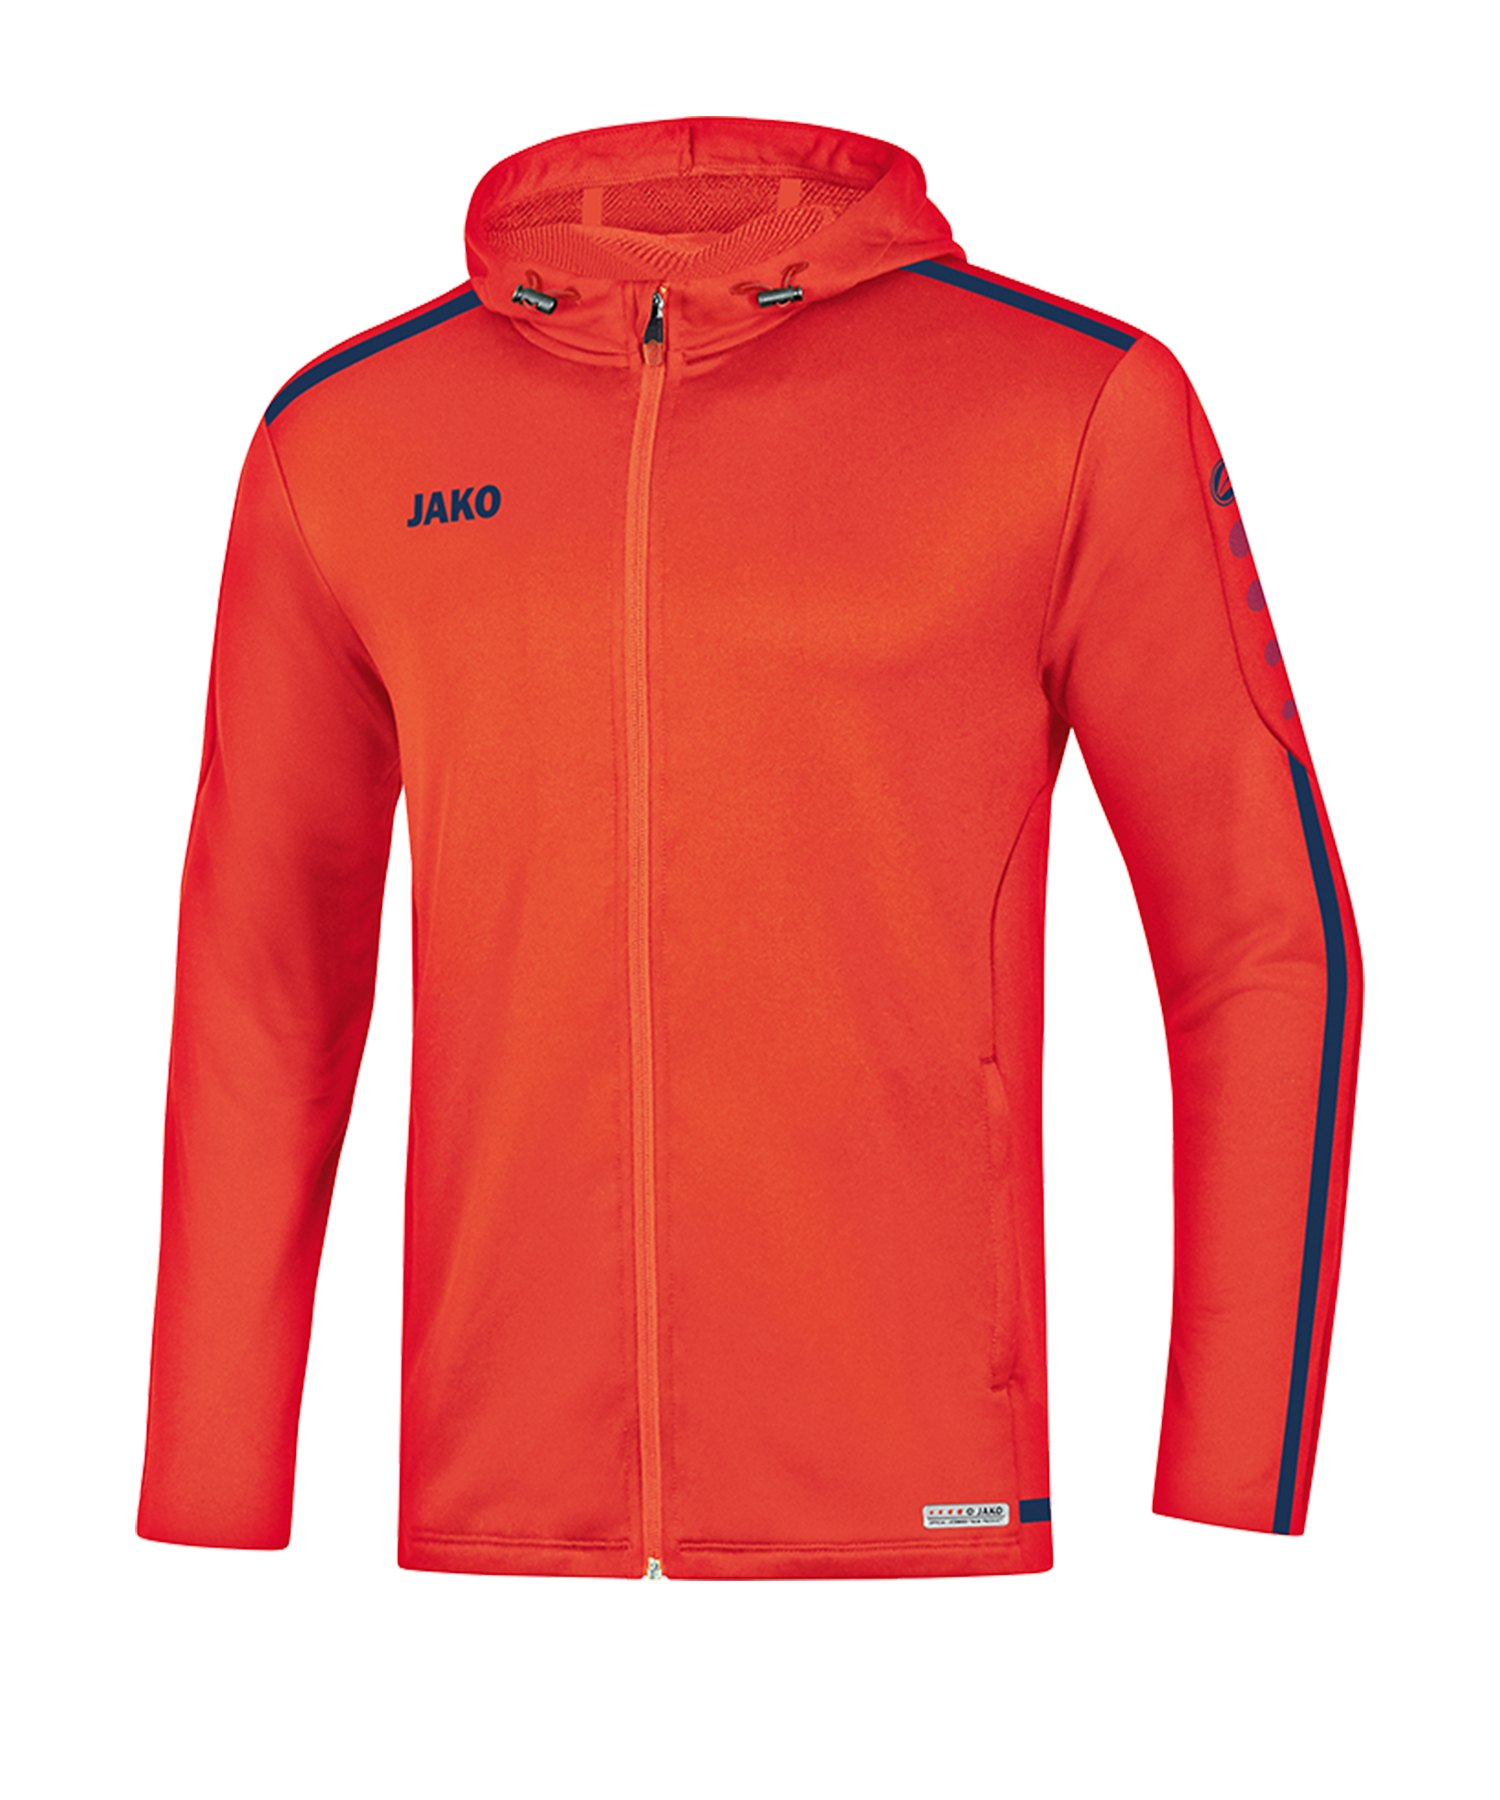 Jako Striker 2.0 Kapuzenjacke Orange Blau F18 - Orange